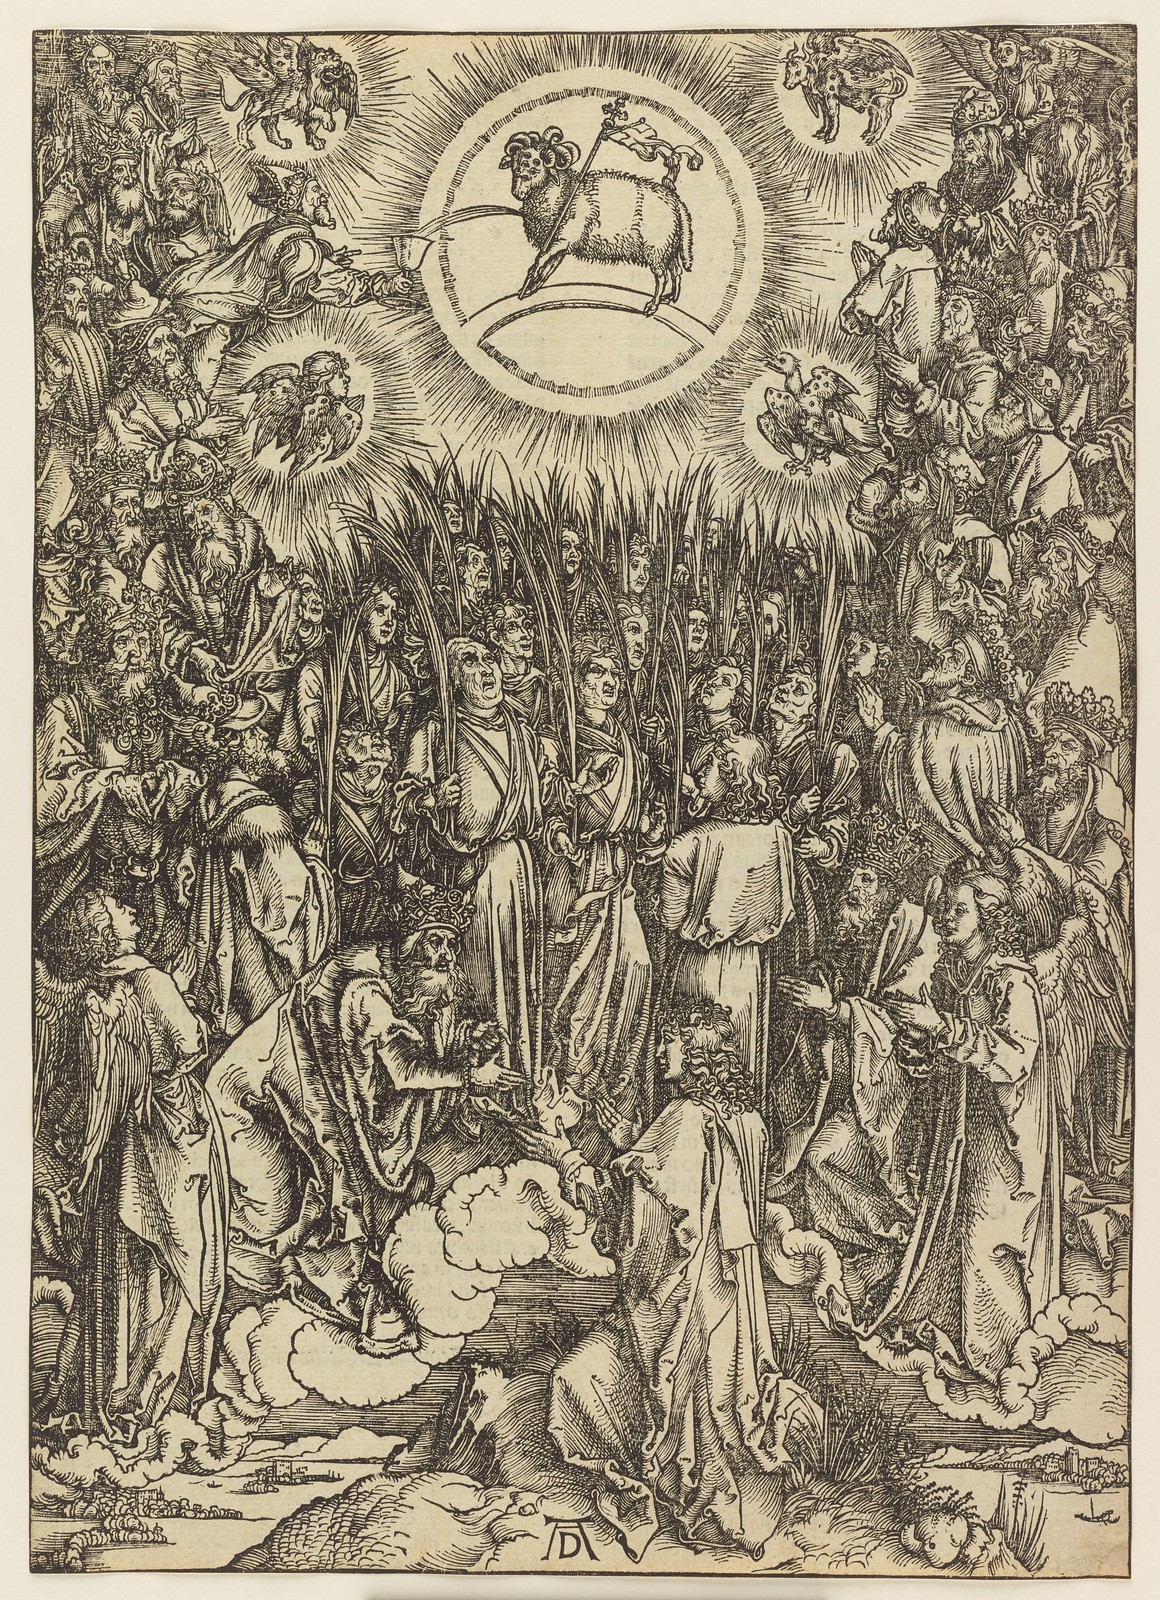 Albrecht Dürer - Adoration of the Lamb, Plate thirteen of fifteen from the Latin edition of The Apocalypse series, printed 1511